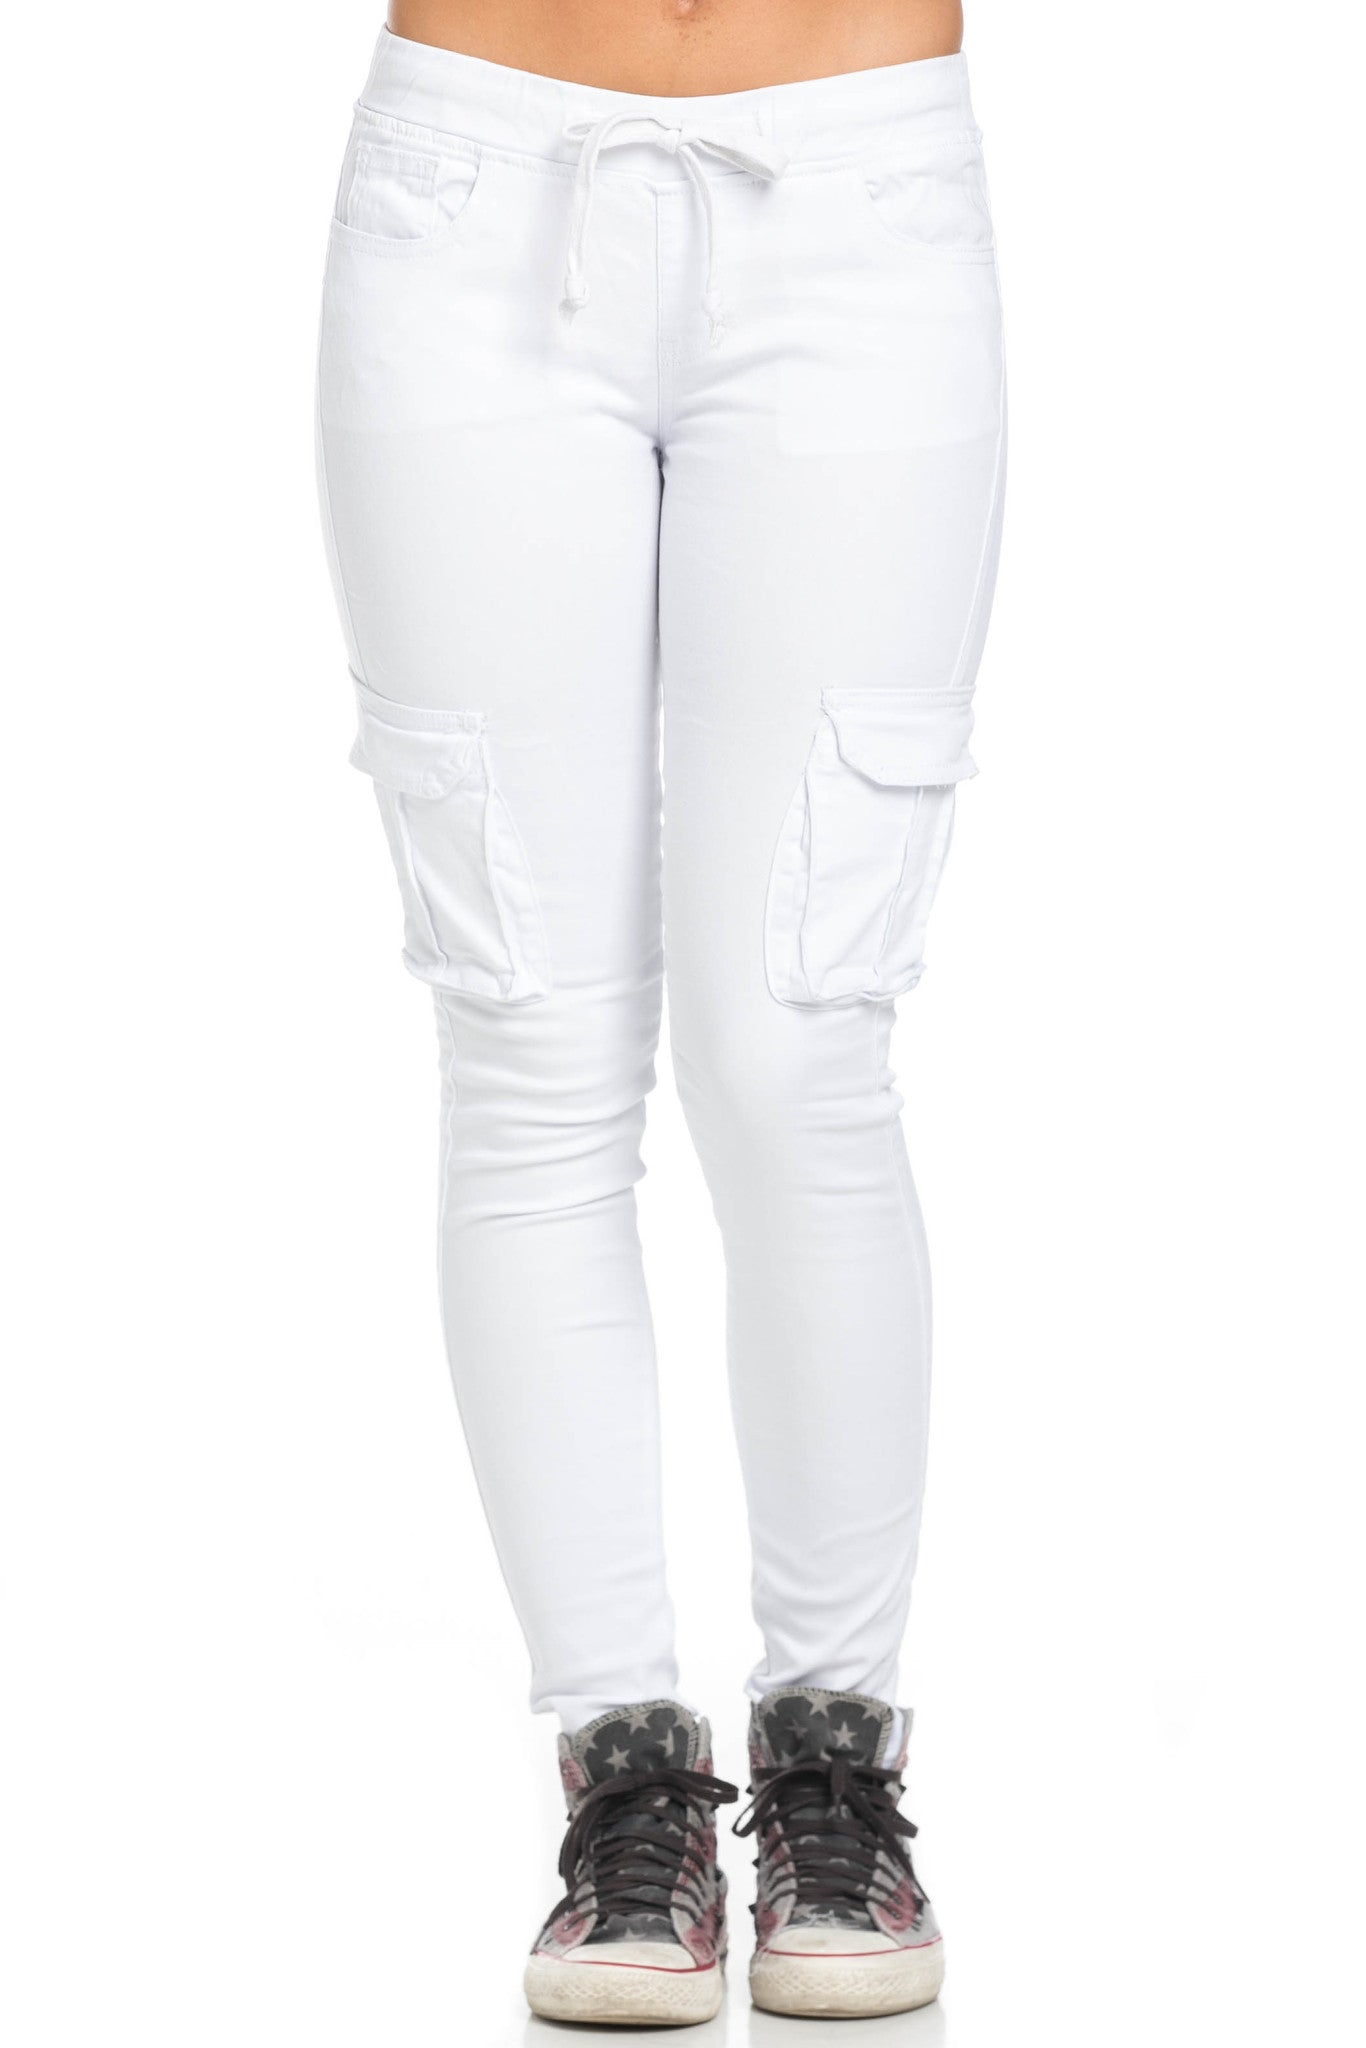 Mid Rise Skinny White Cargo Pants - Pants - My Yuccie - 2